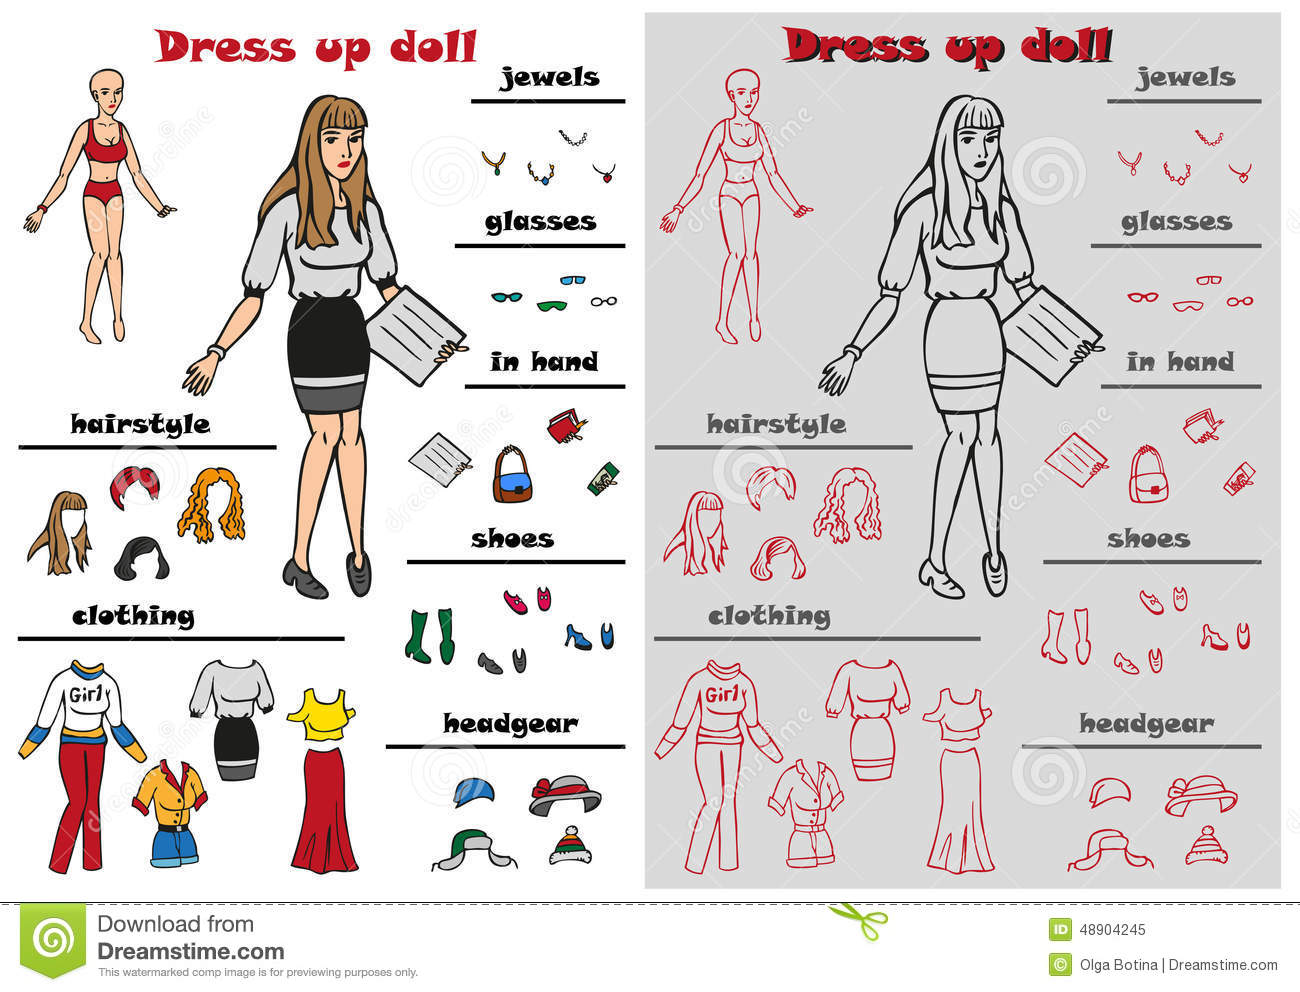 Something is. Dress up naked doll directly. opinion